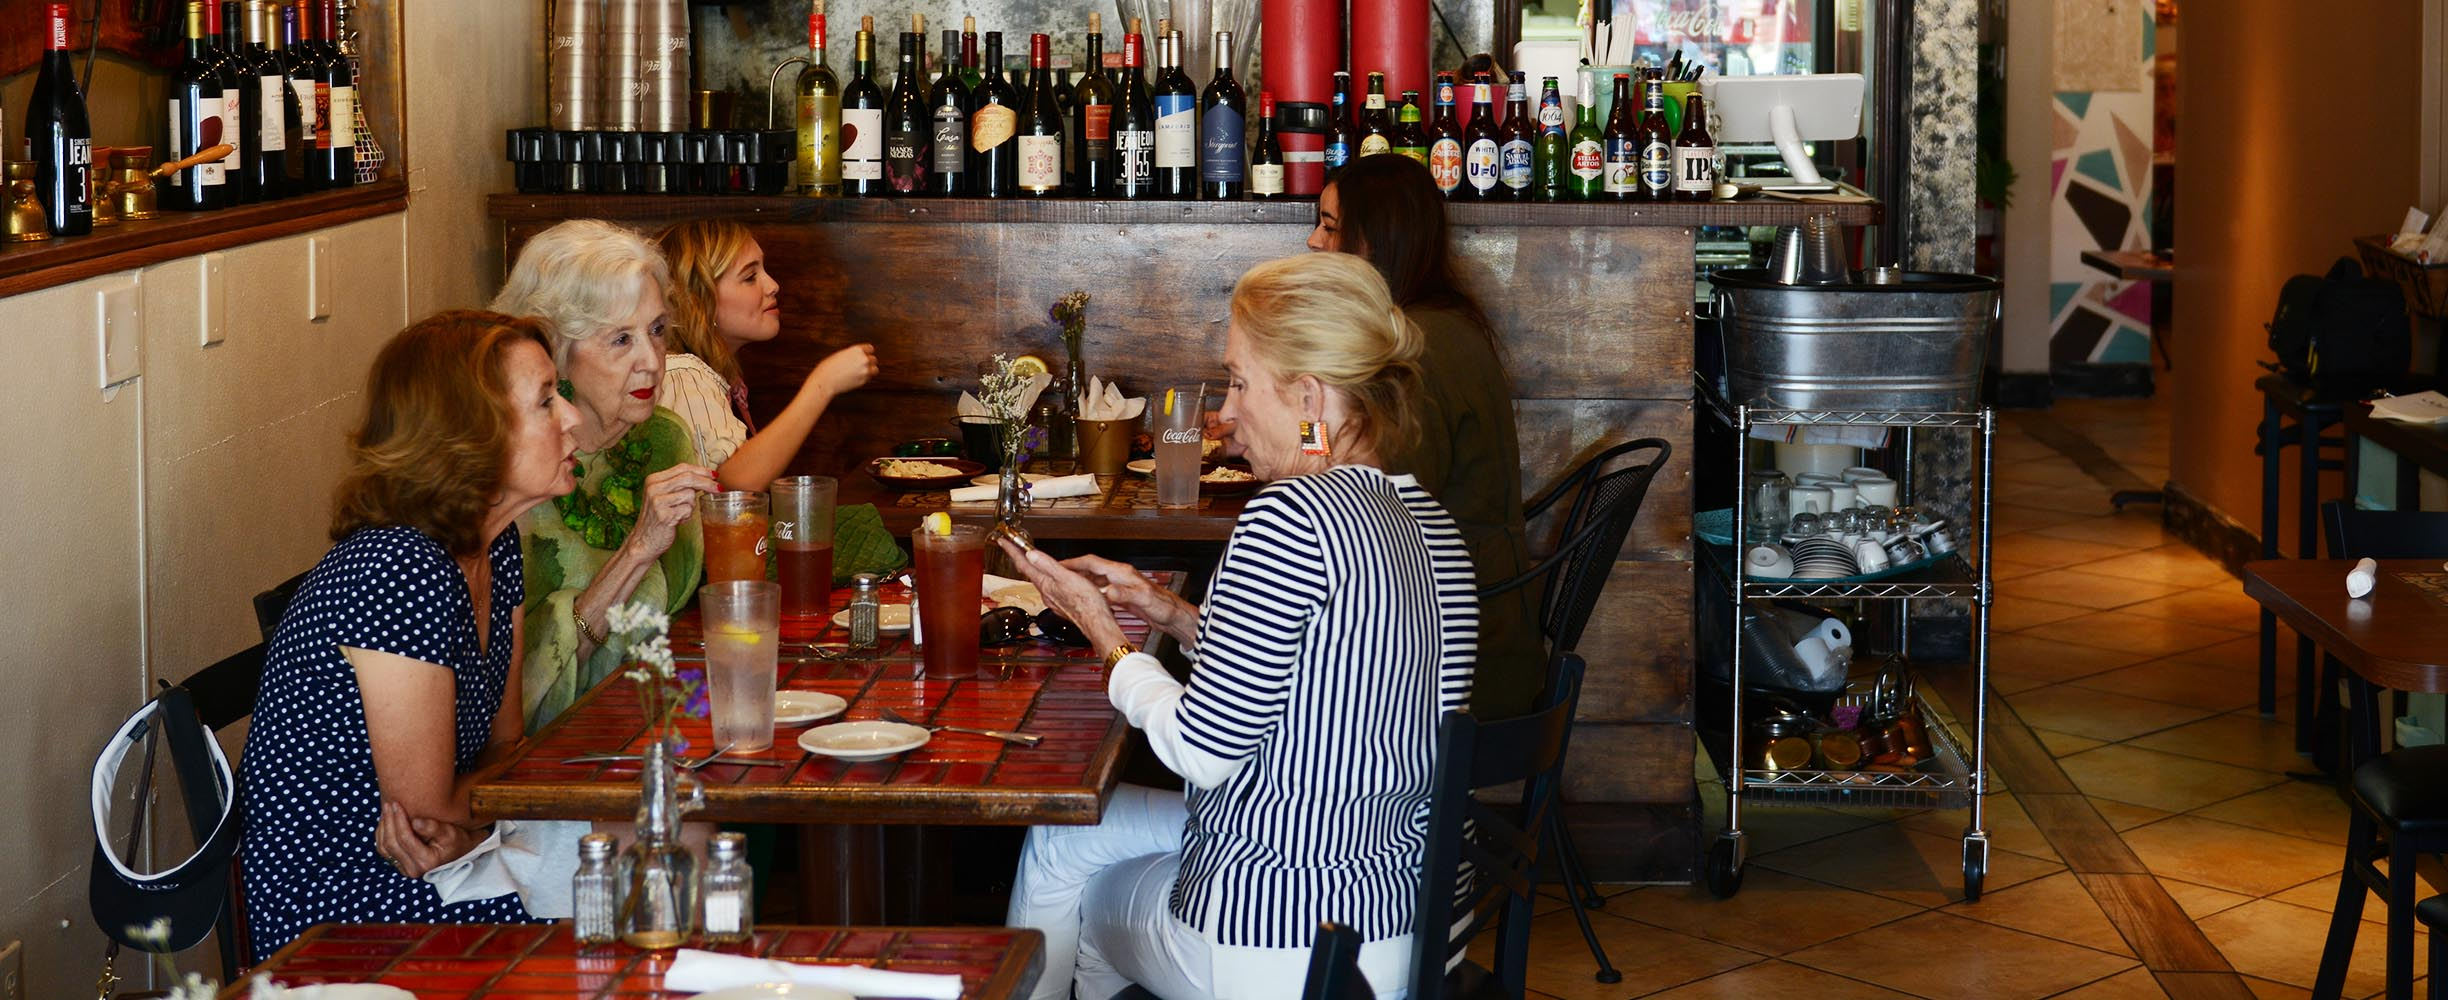 We love to see that people from all ages come to our restaurant in Fairhope!